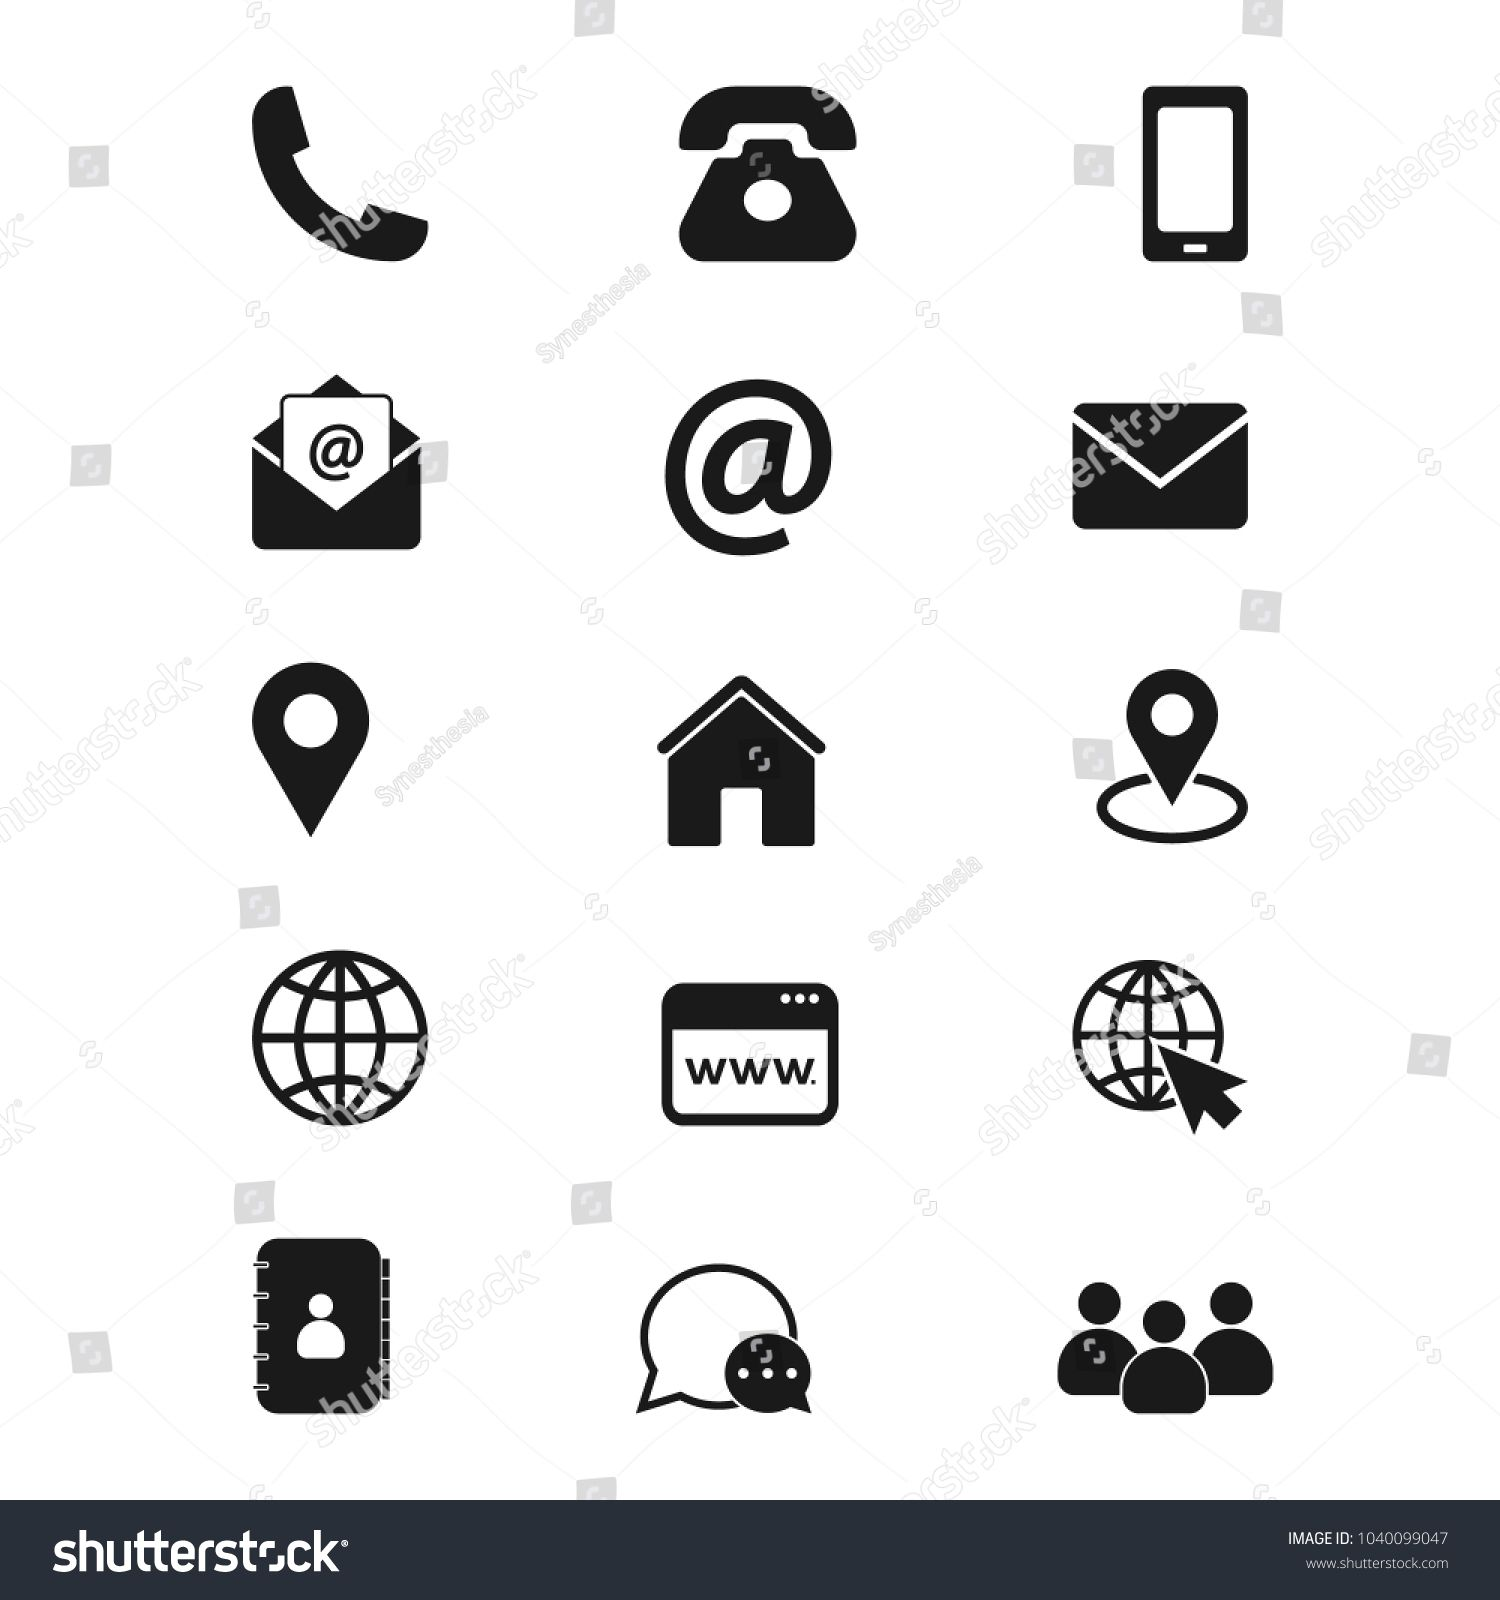 Contact us icons simple vector icons set on white